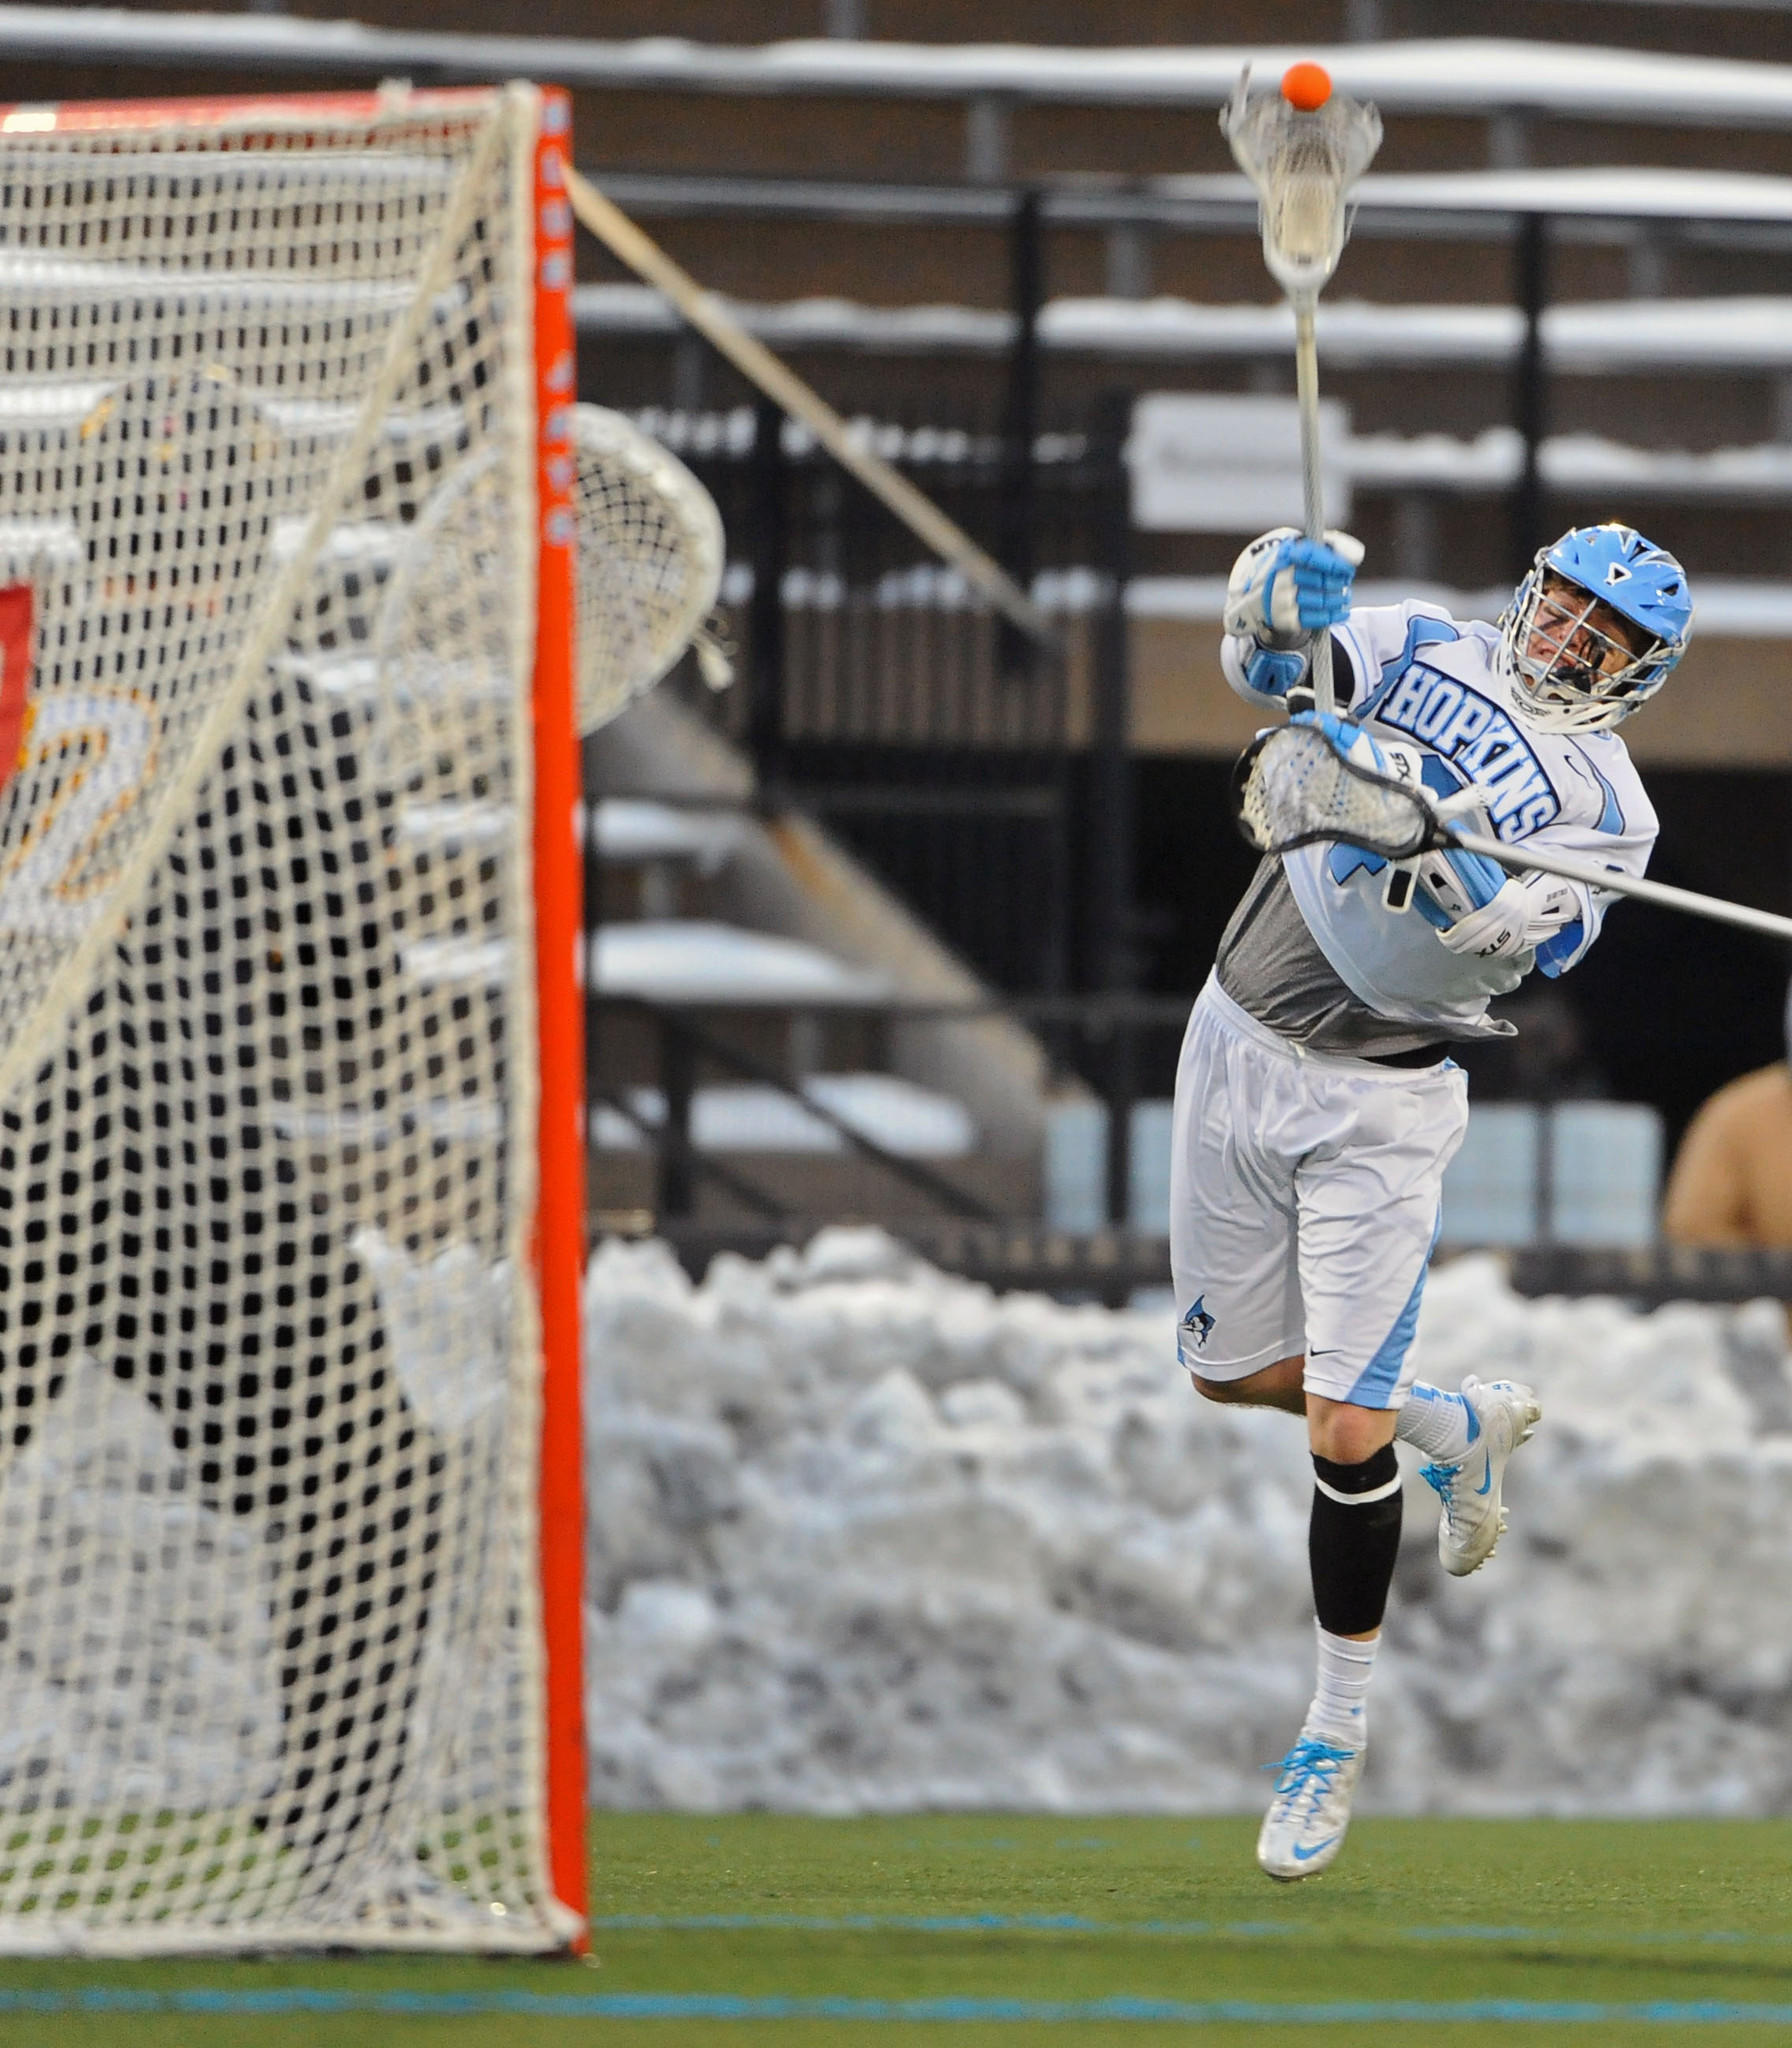 Johns Hopkins' Ryan Brown, right, shoots and scores against Towson in the third quarter of a 15-8 Blue Jays win last Saturday.